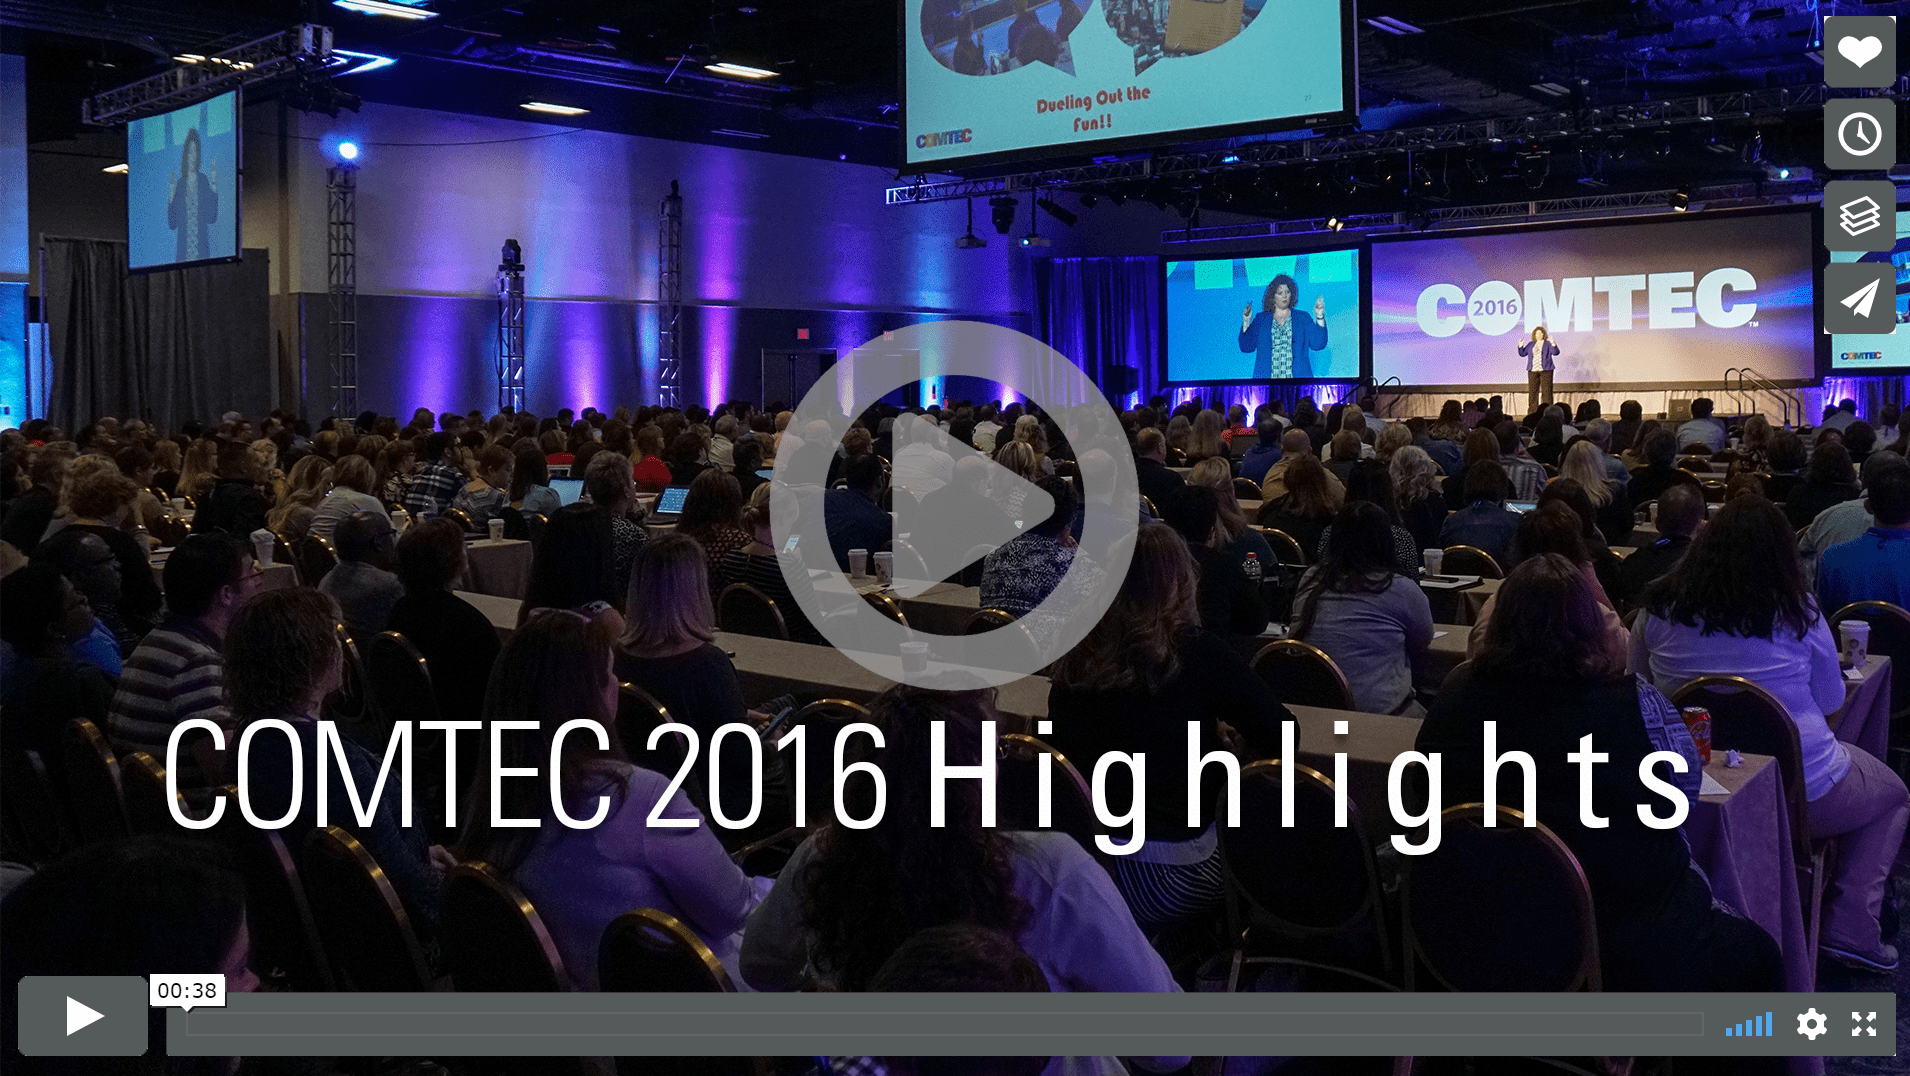 COMTEC 2016 Highlight Video